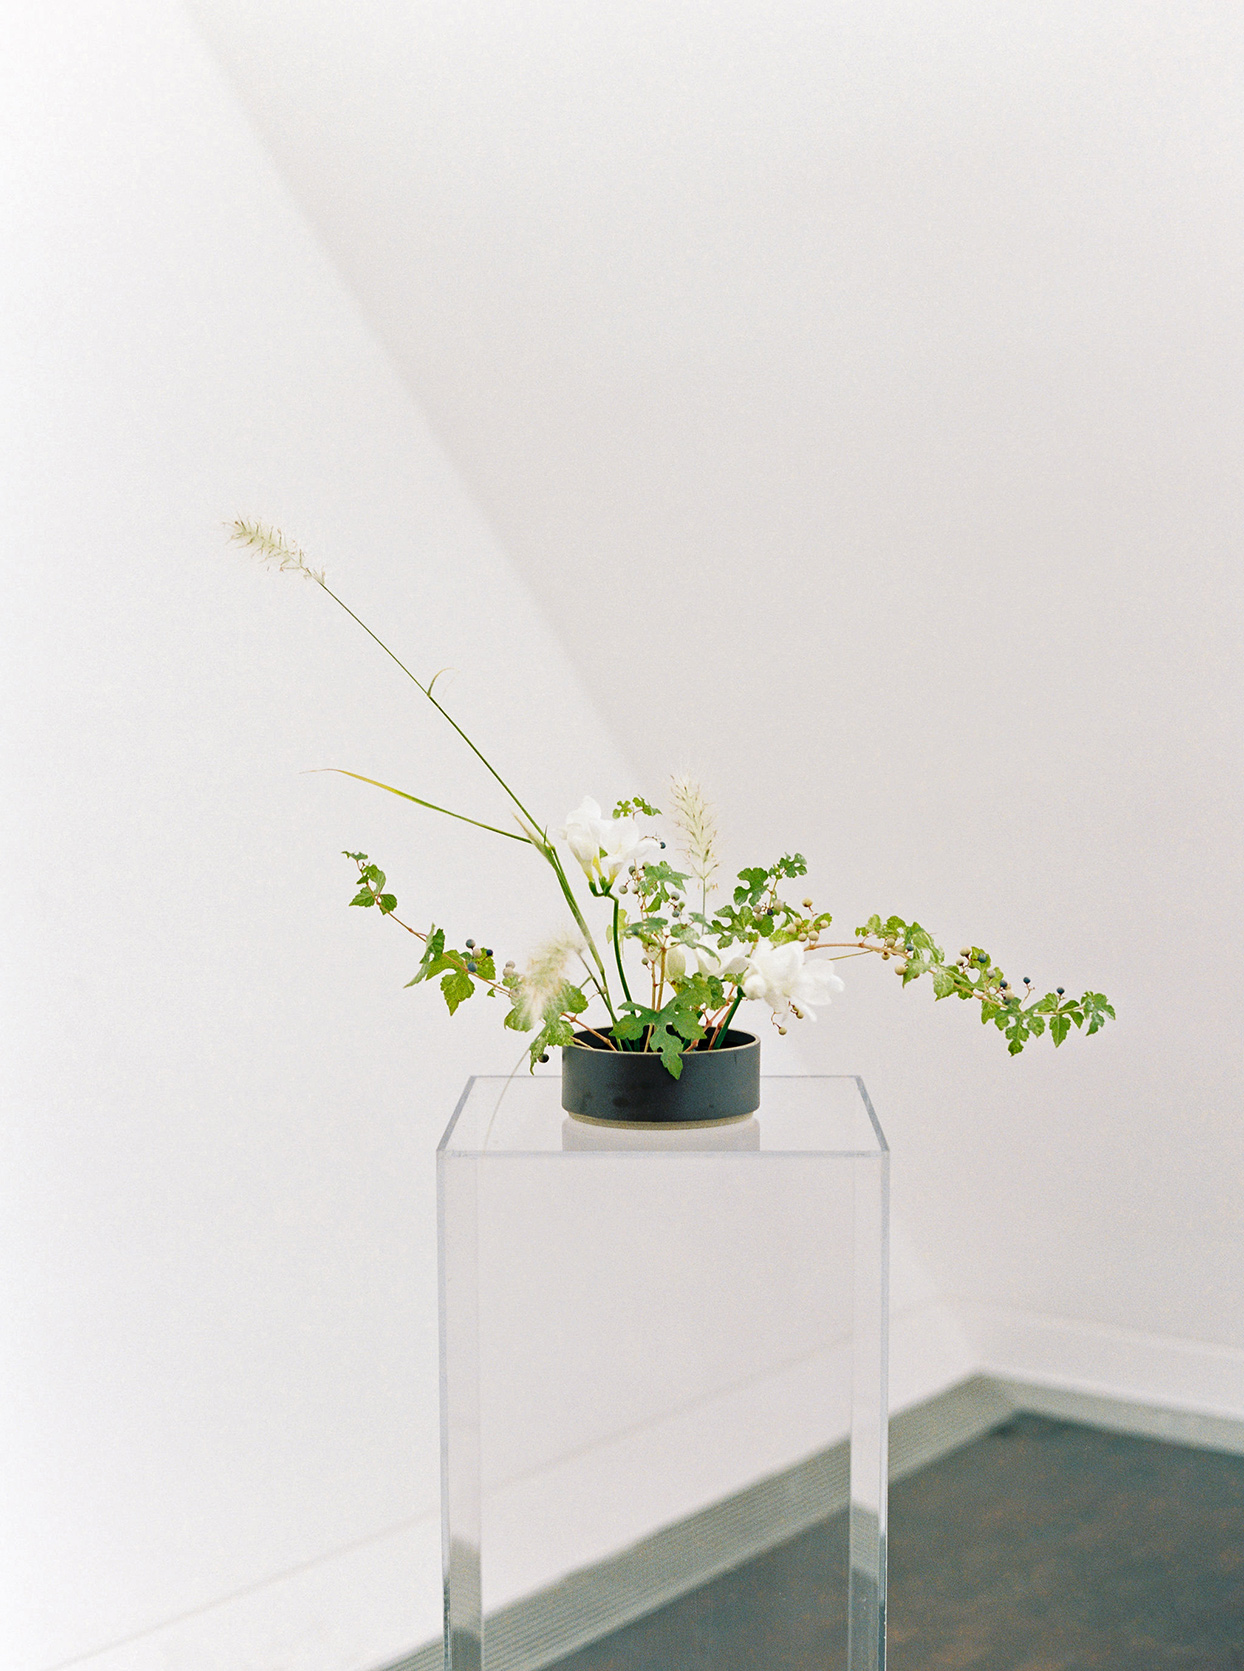 minimalist ikebana floral and greenery arrangement on clear table